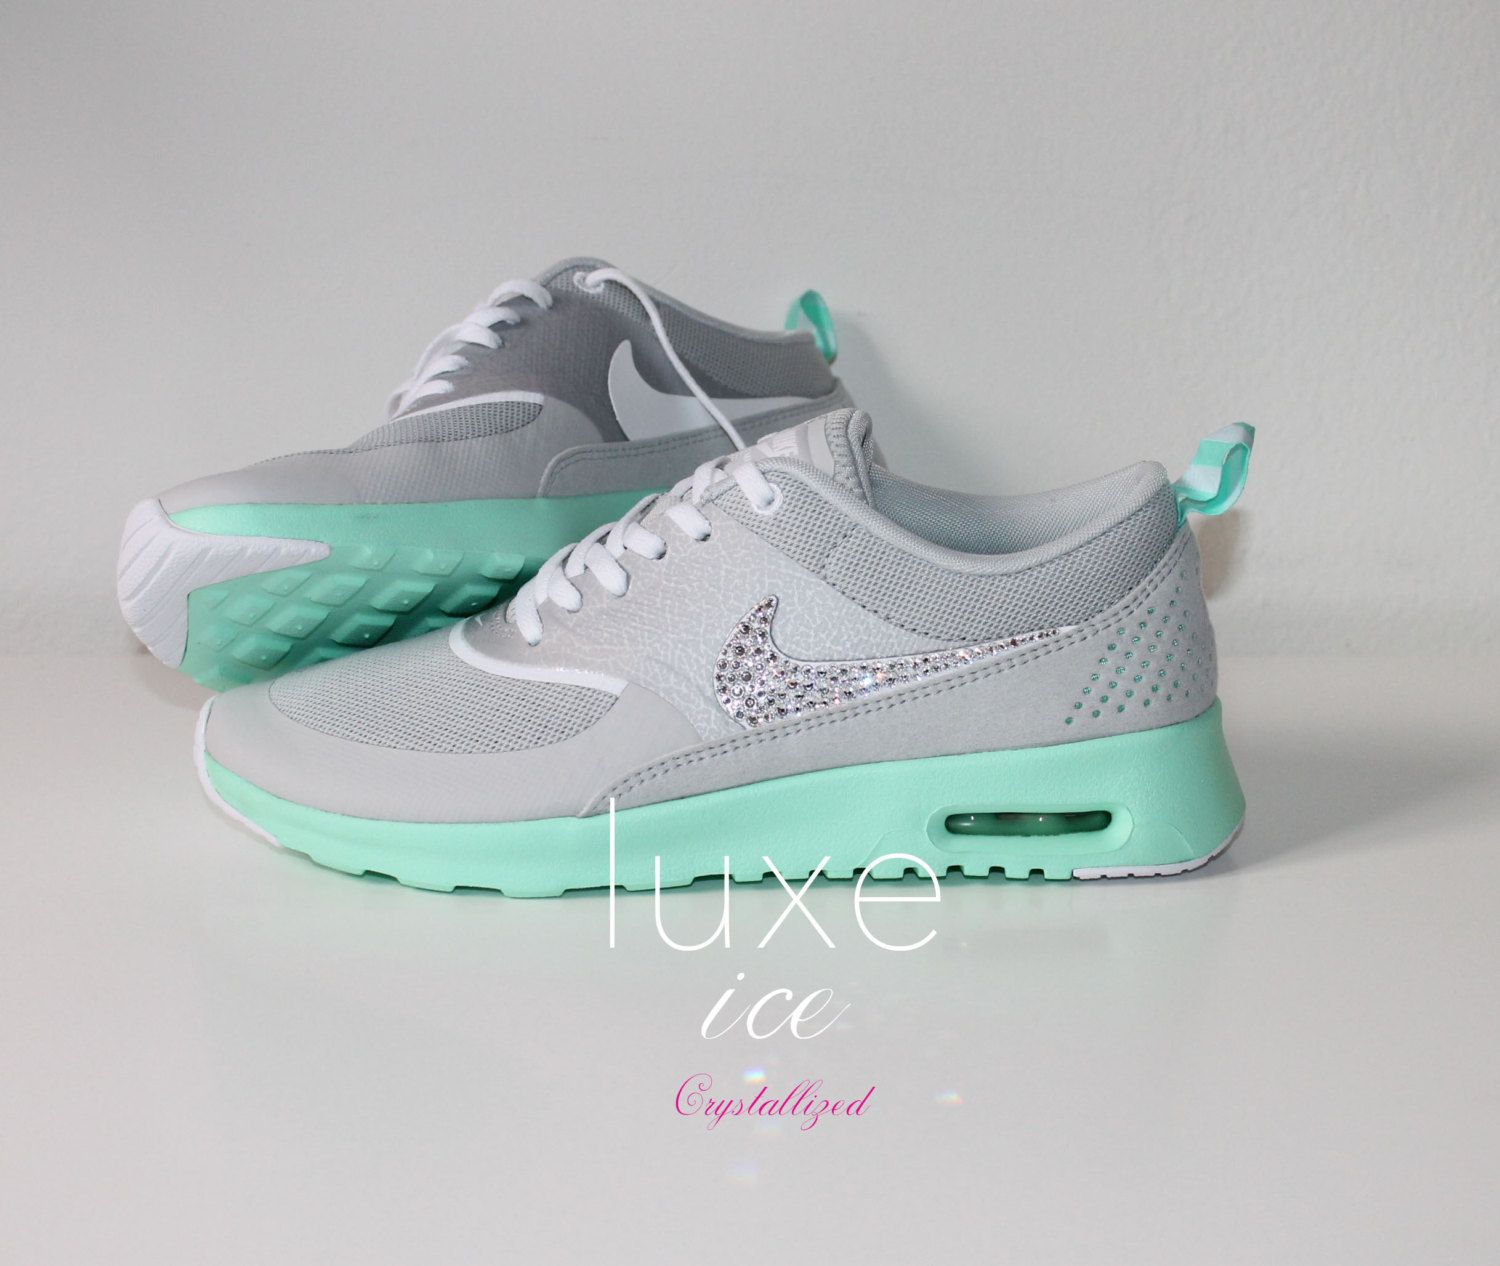 Nike Air Max Thea shoes w Swarovski Crystals detail by luxeice ... 34509ca4882